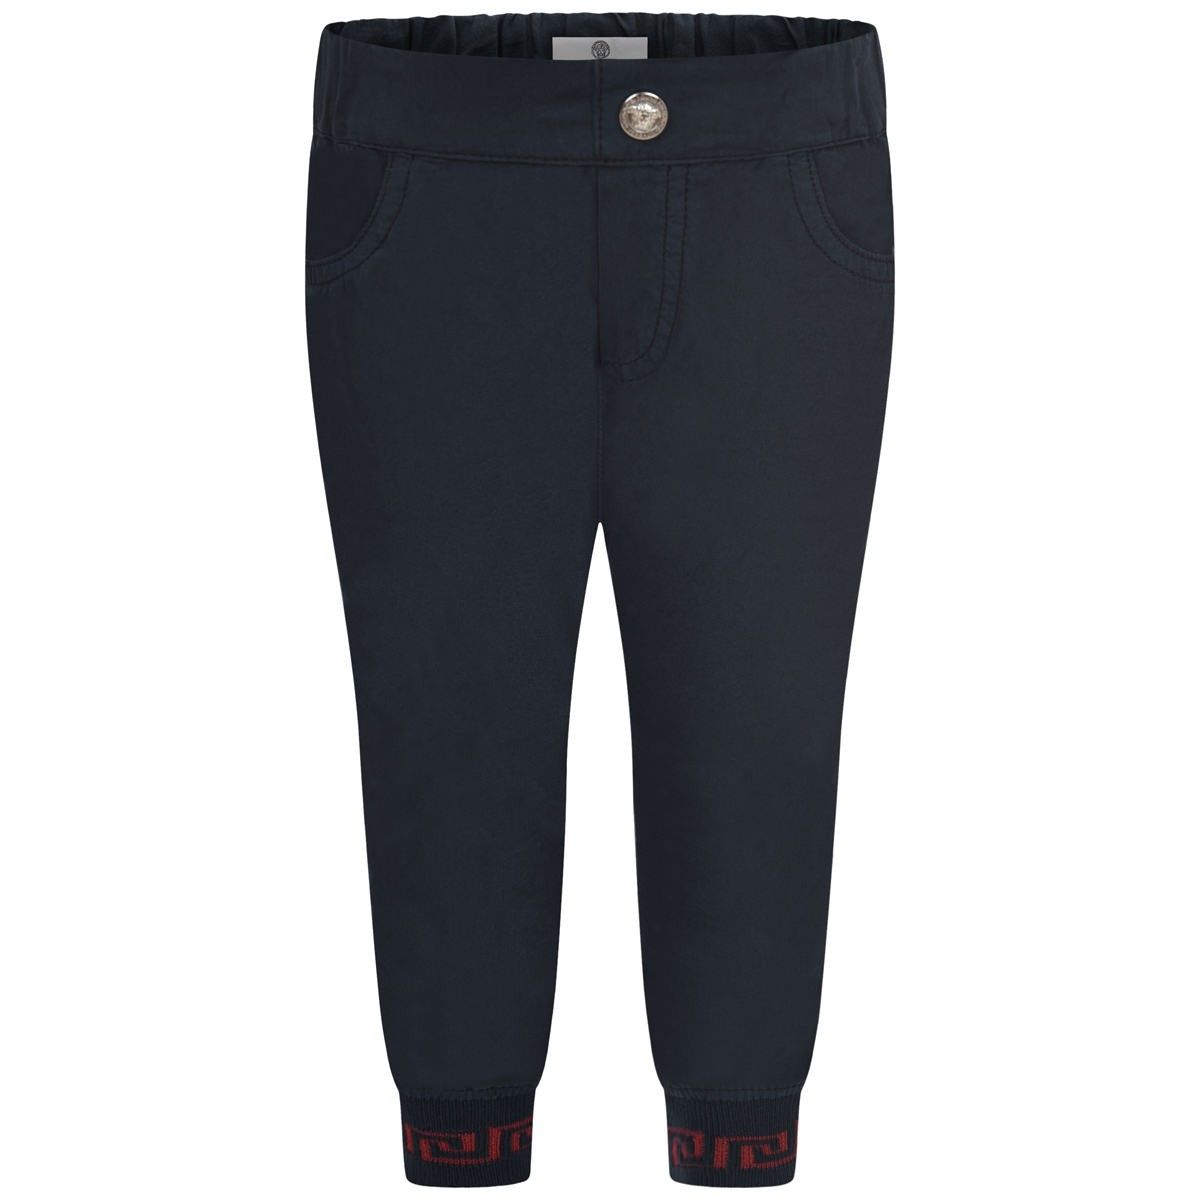 b0c1ece0cb98 Young Versace Baby Boys Navy Blue Trousers